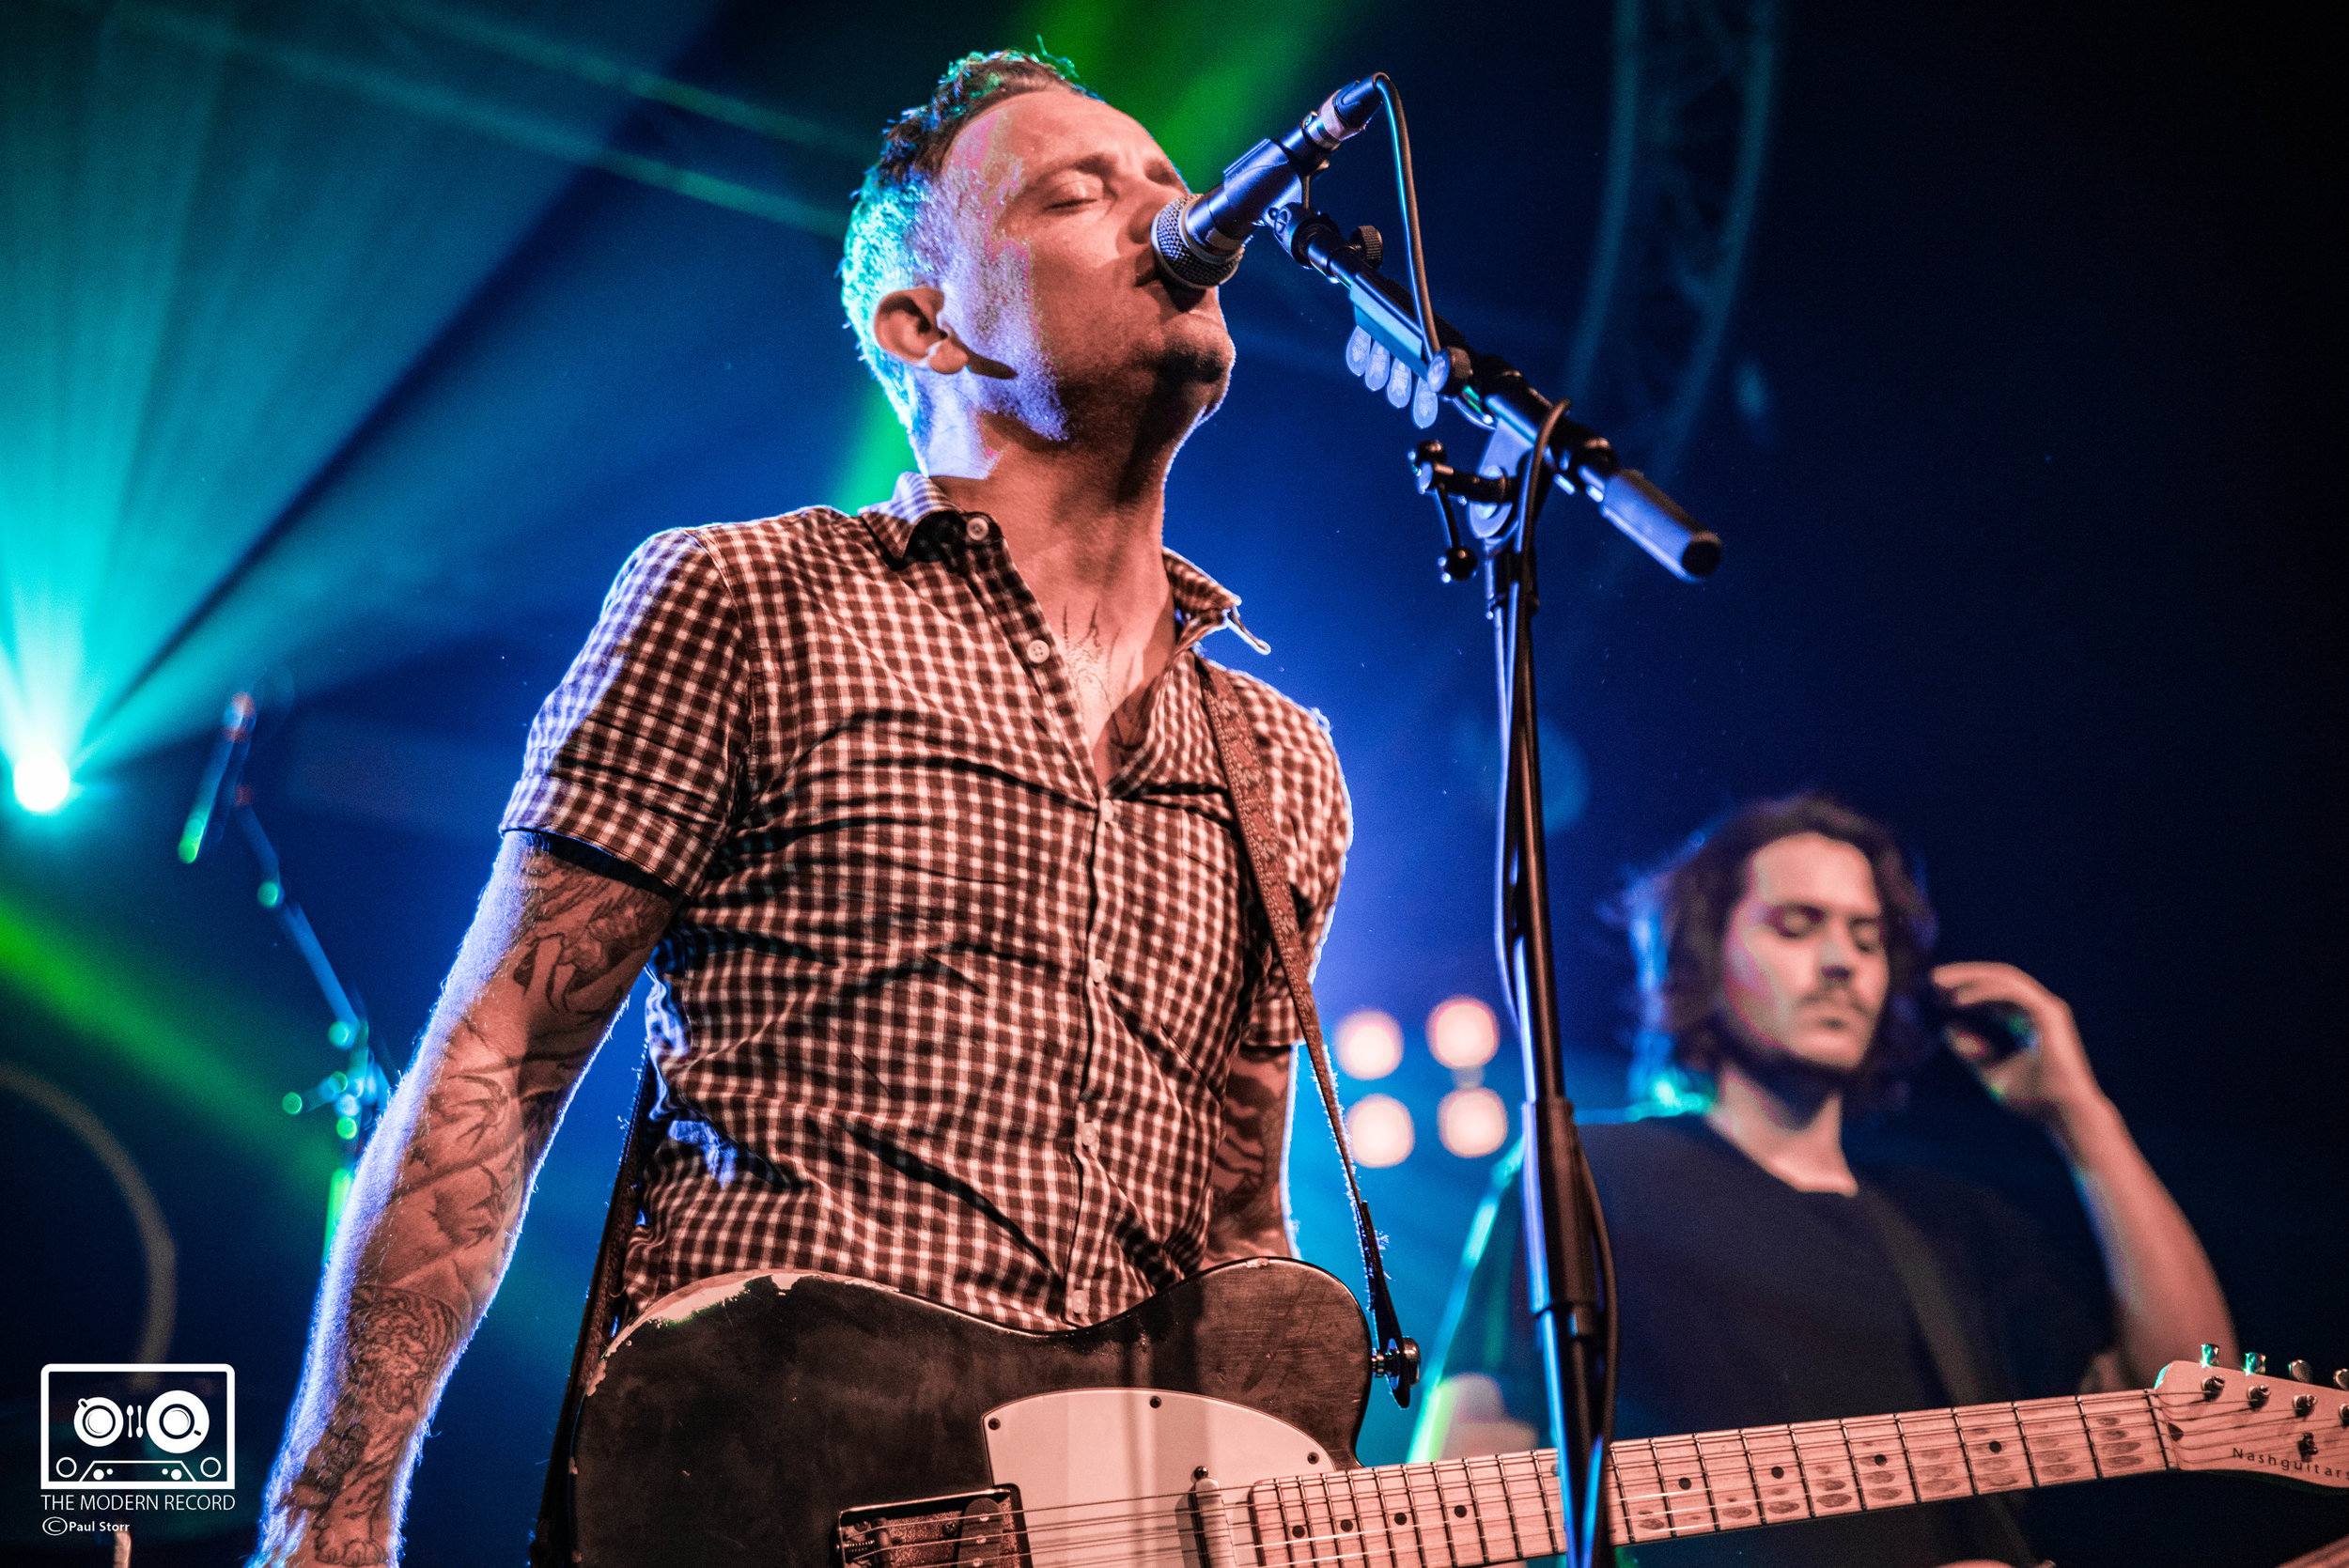 Dave Hause and the Mermaid, Glasgow Garage, 13-10-17-10.jpg